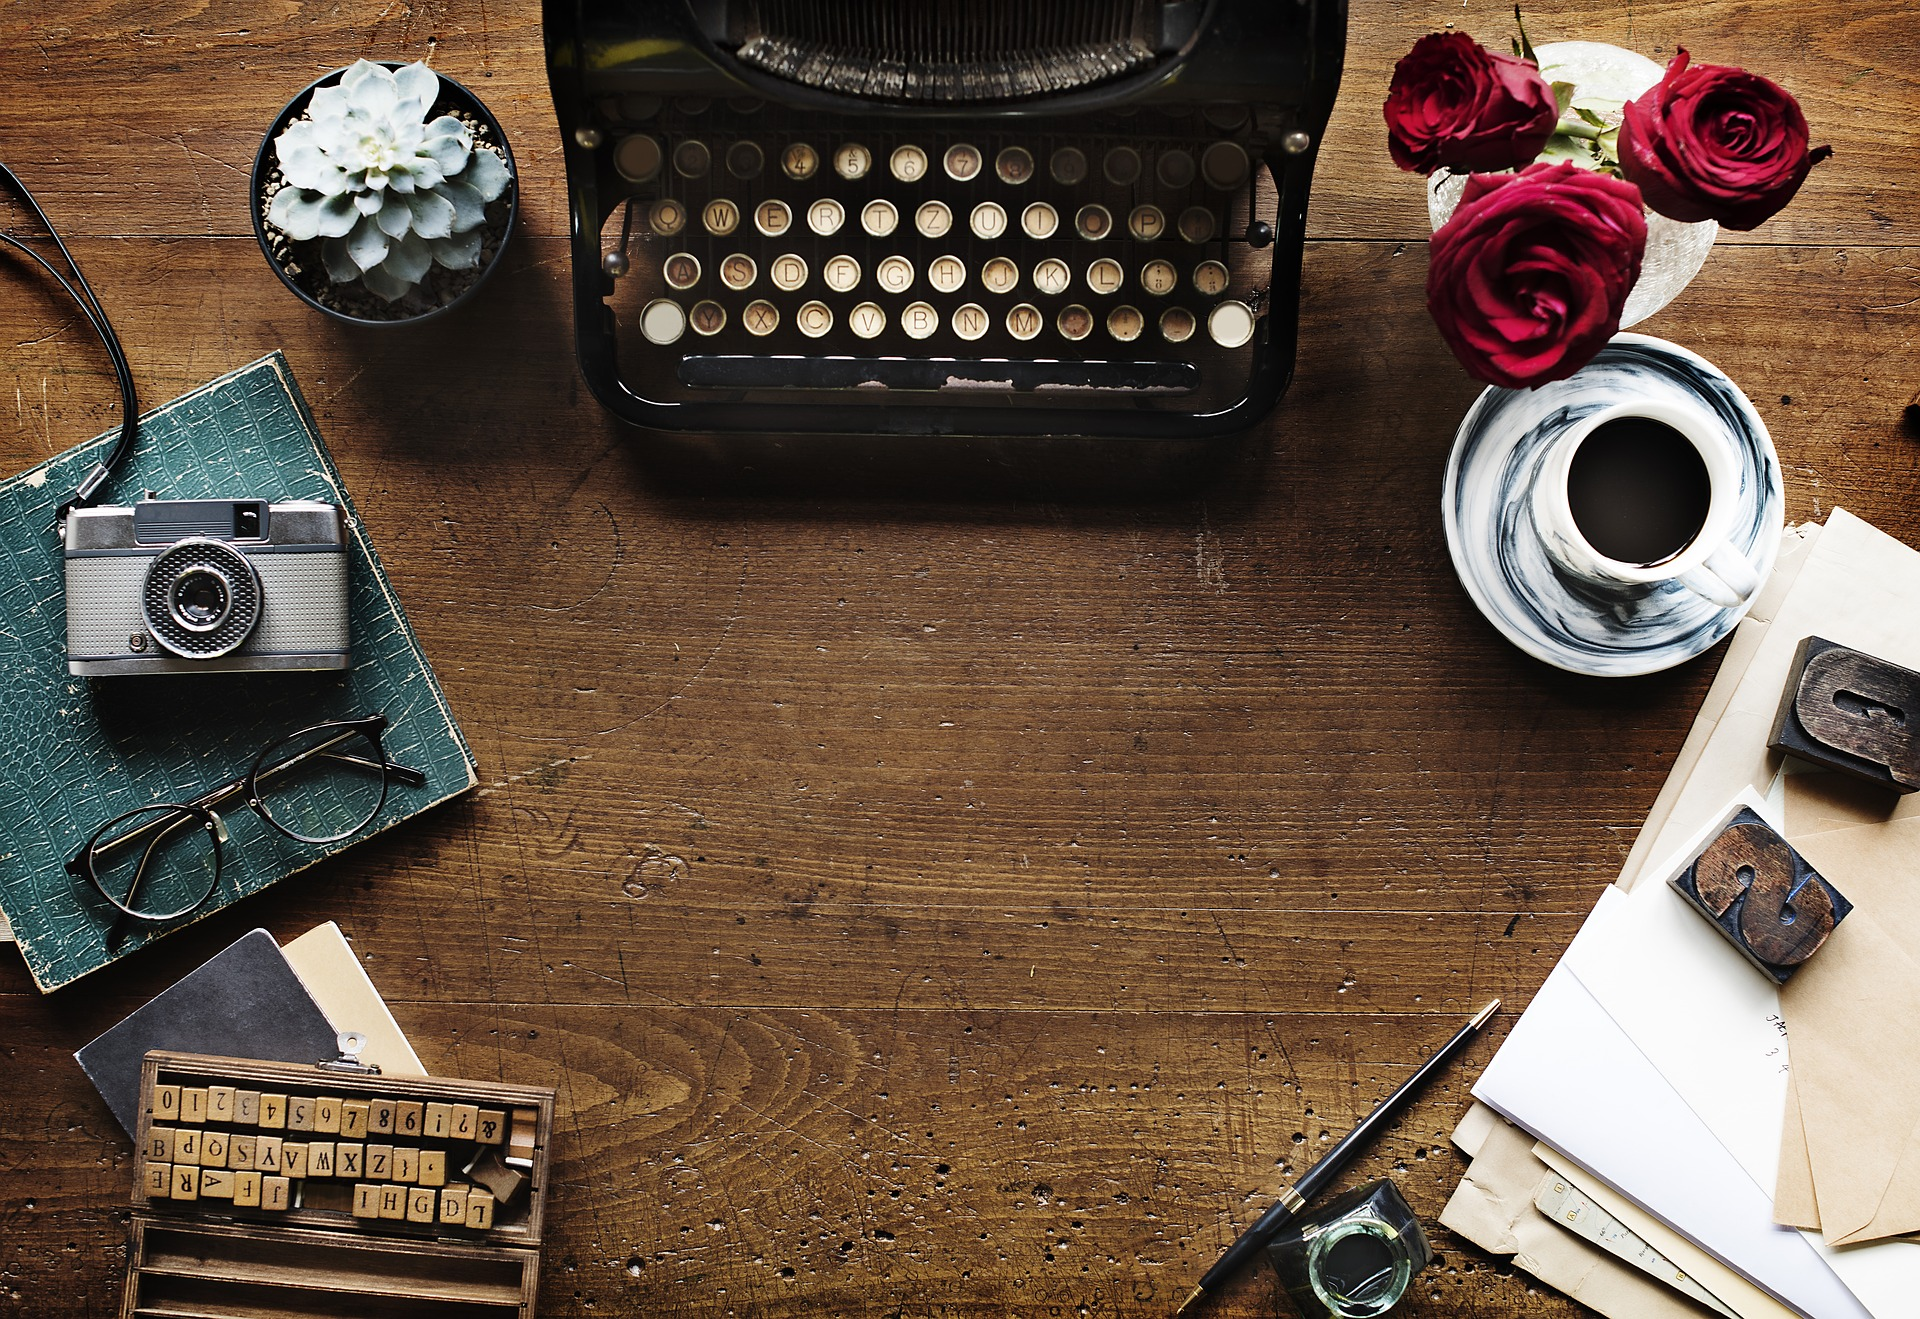 Typewriter with roses, mug, and books on a table